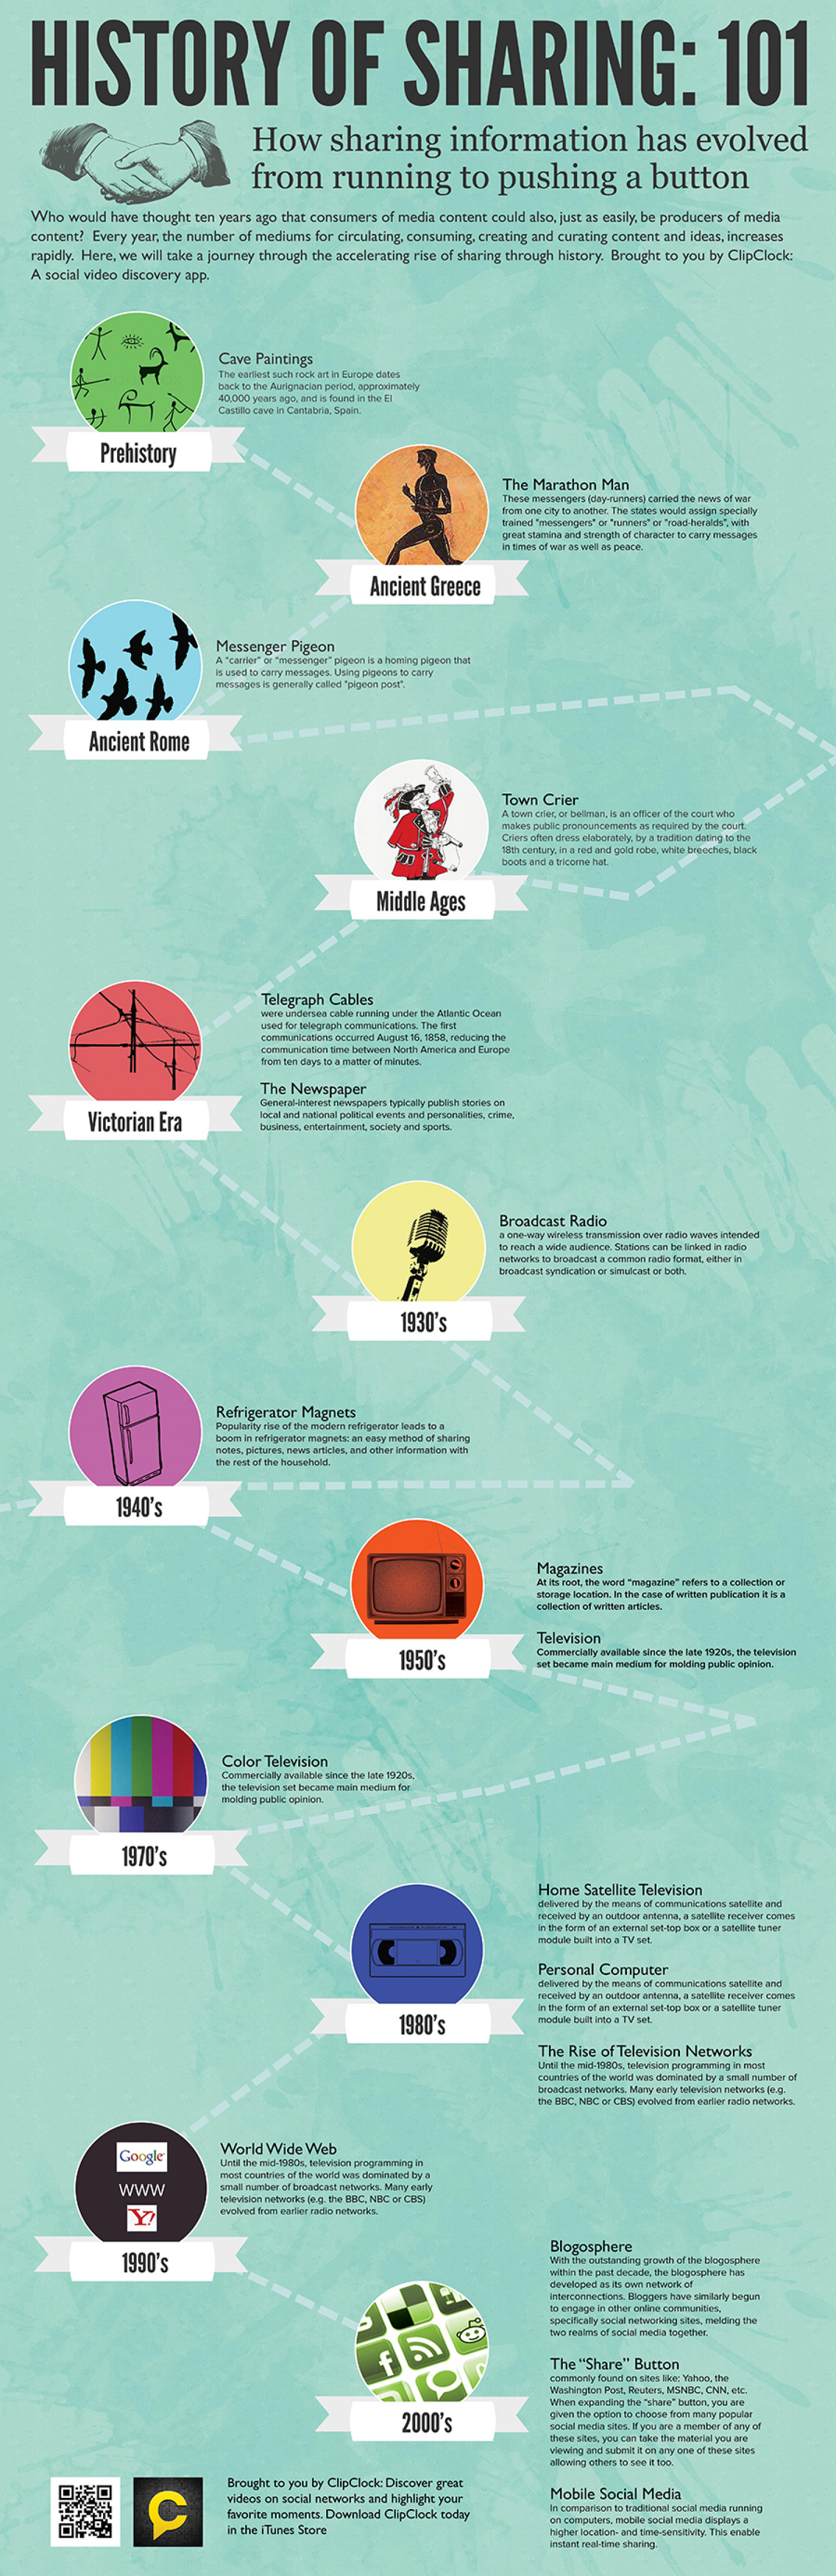 History of Sharing:101 Infographic